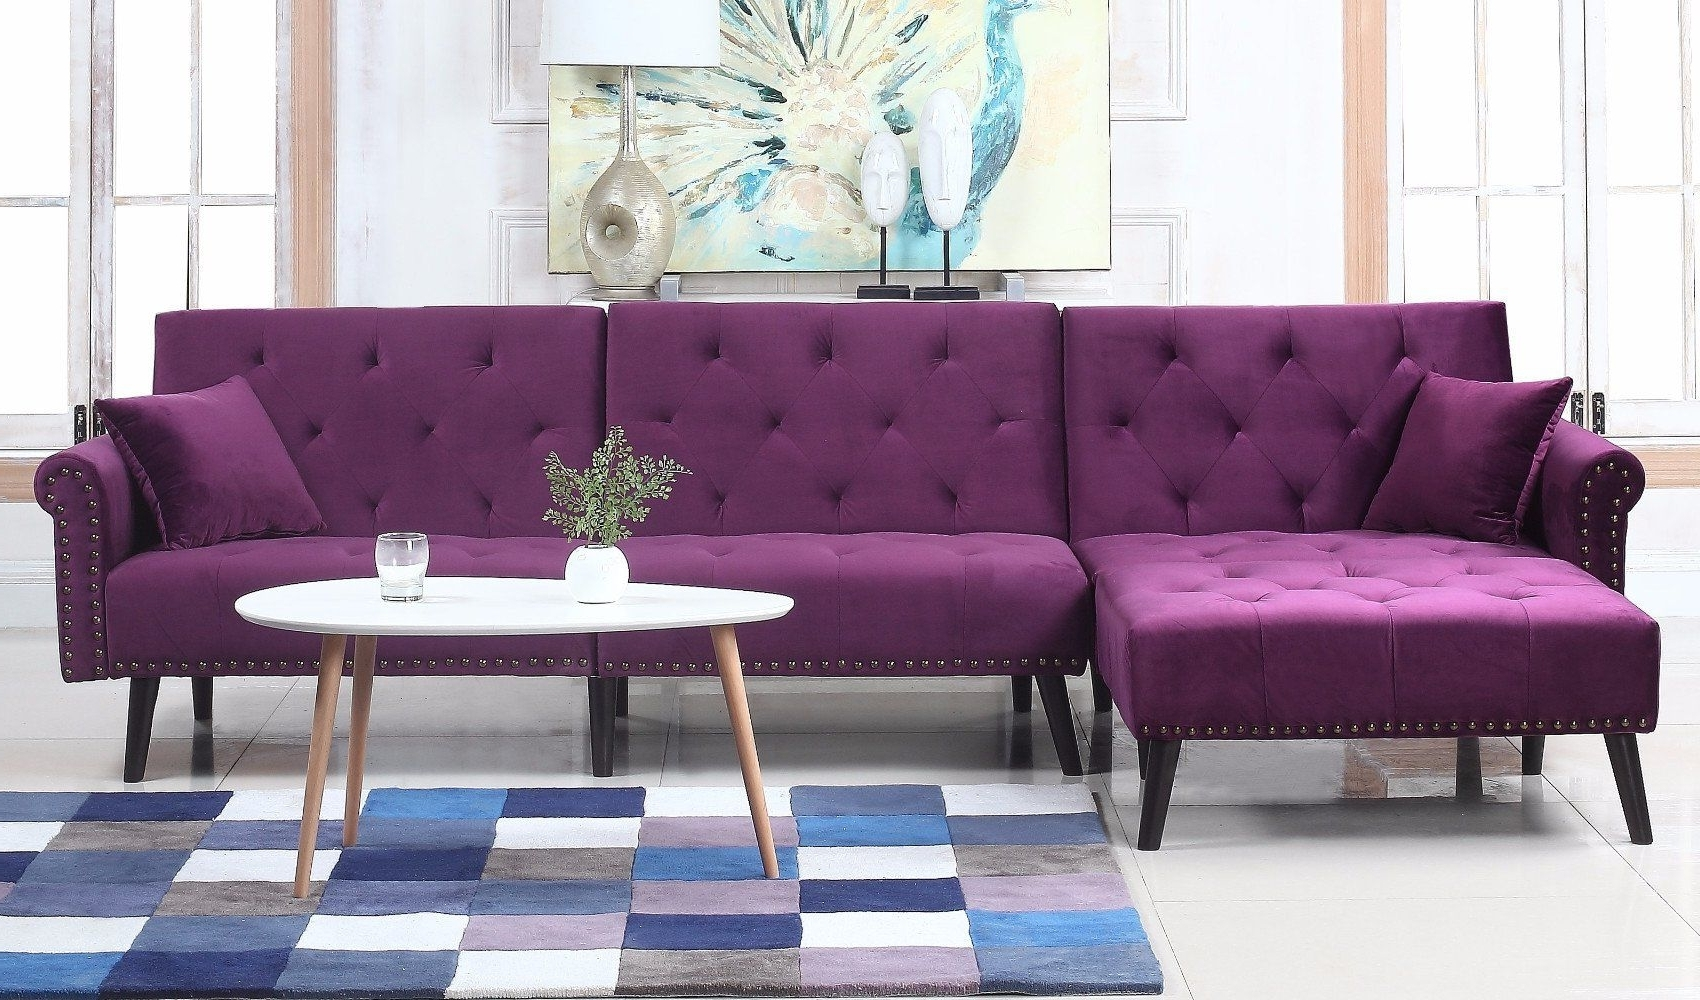 Velvet Sectional Sofas With Chaise With Widely Used Victoria Velvet Sectional Futon With Chaise In Purple (View 4 of 15)